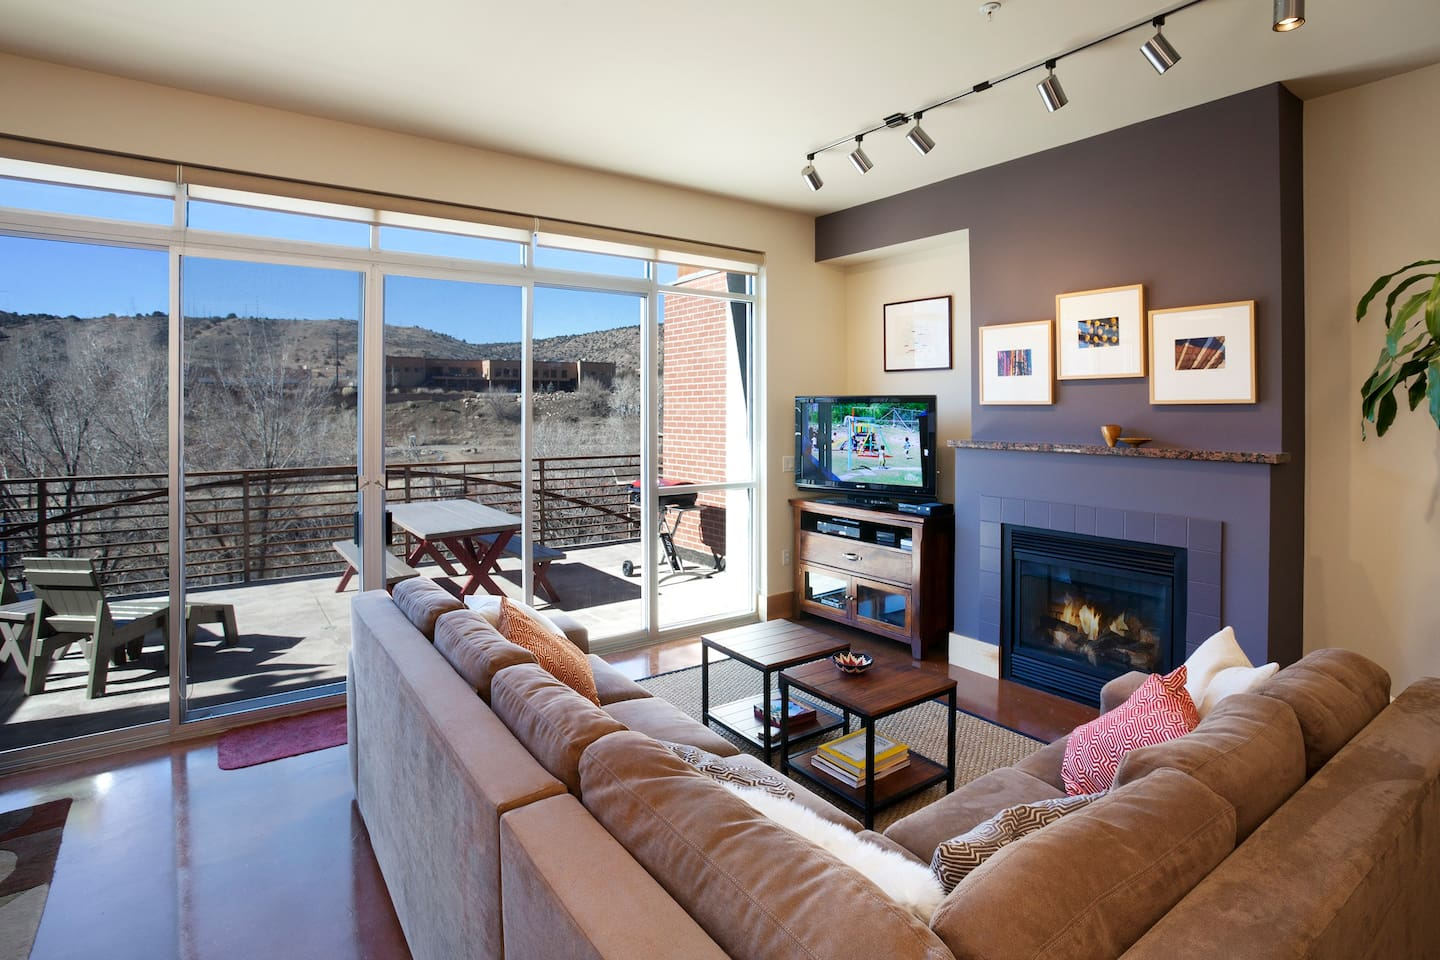 Relaxing and comfortable living area with views overlooking the Animas River and La Plata Mountains.